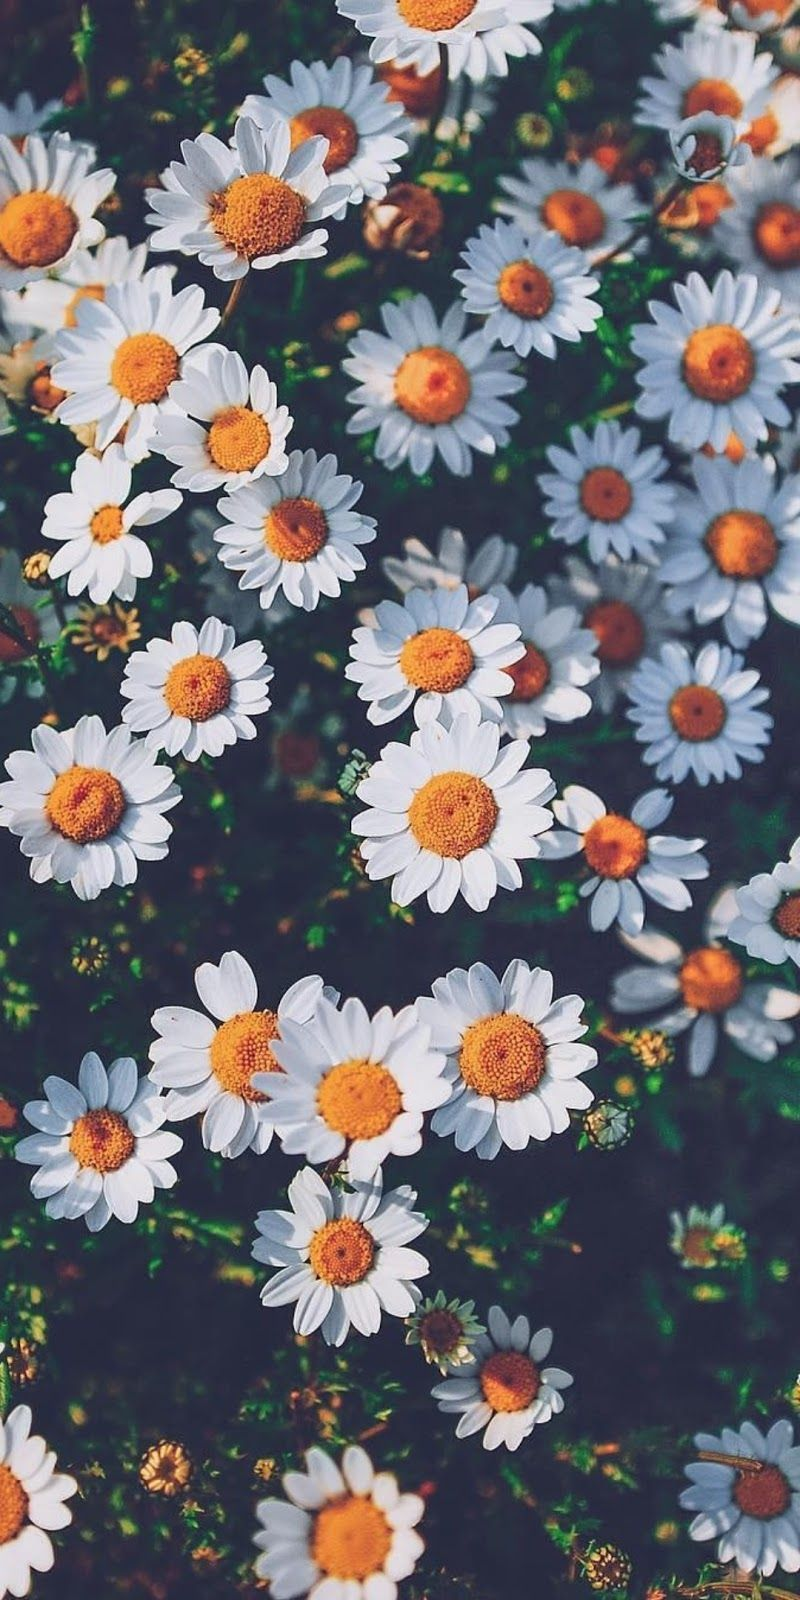 Daisy Aesthetic Wallpapers Top Free Daisy Aesthetic Backgrounds Wallpaperaccess